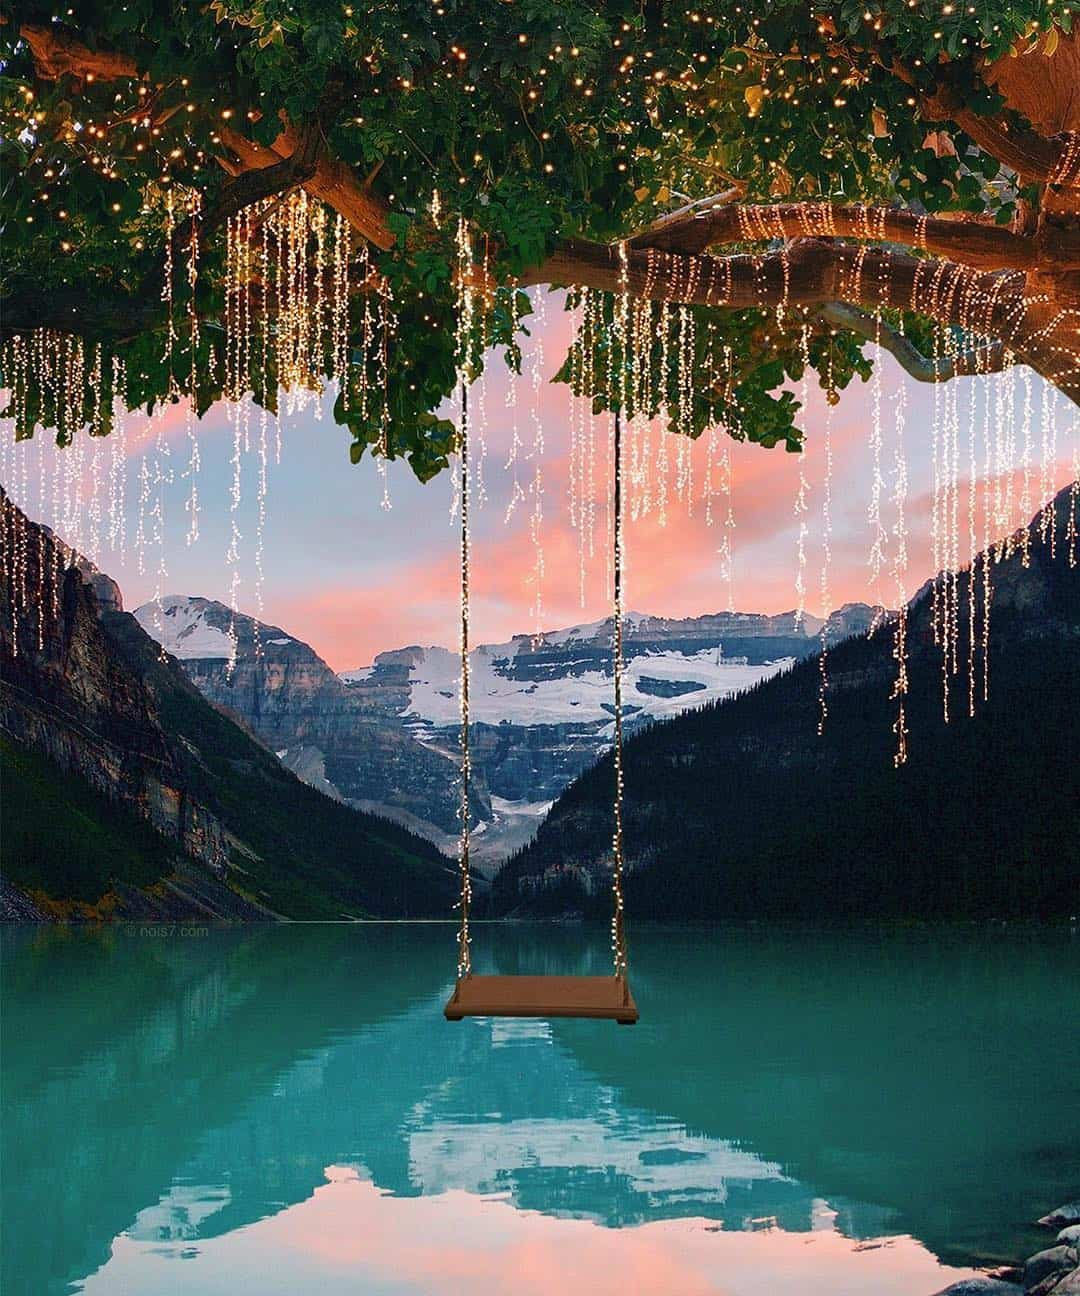 digital art robert jahns 32